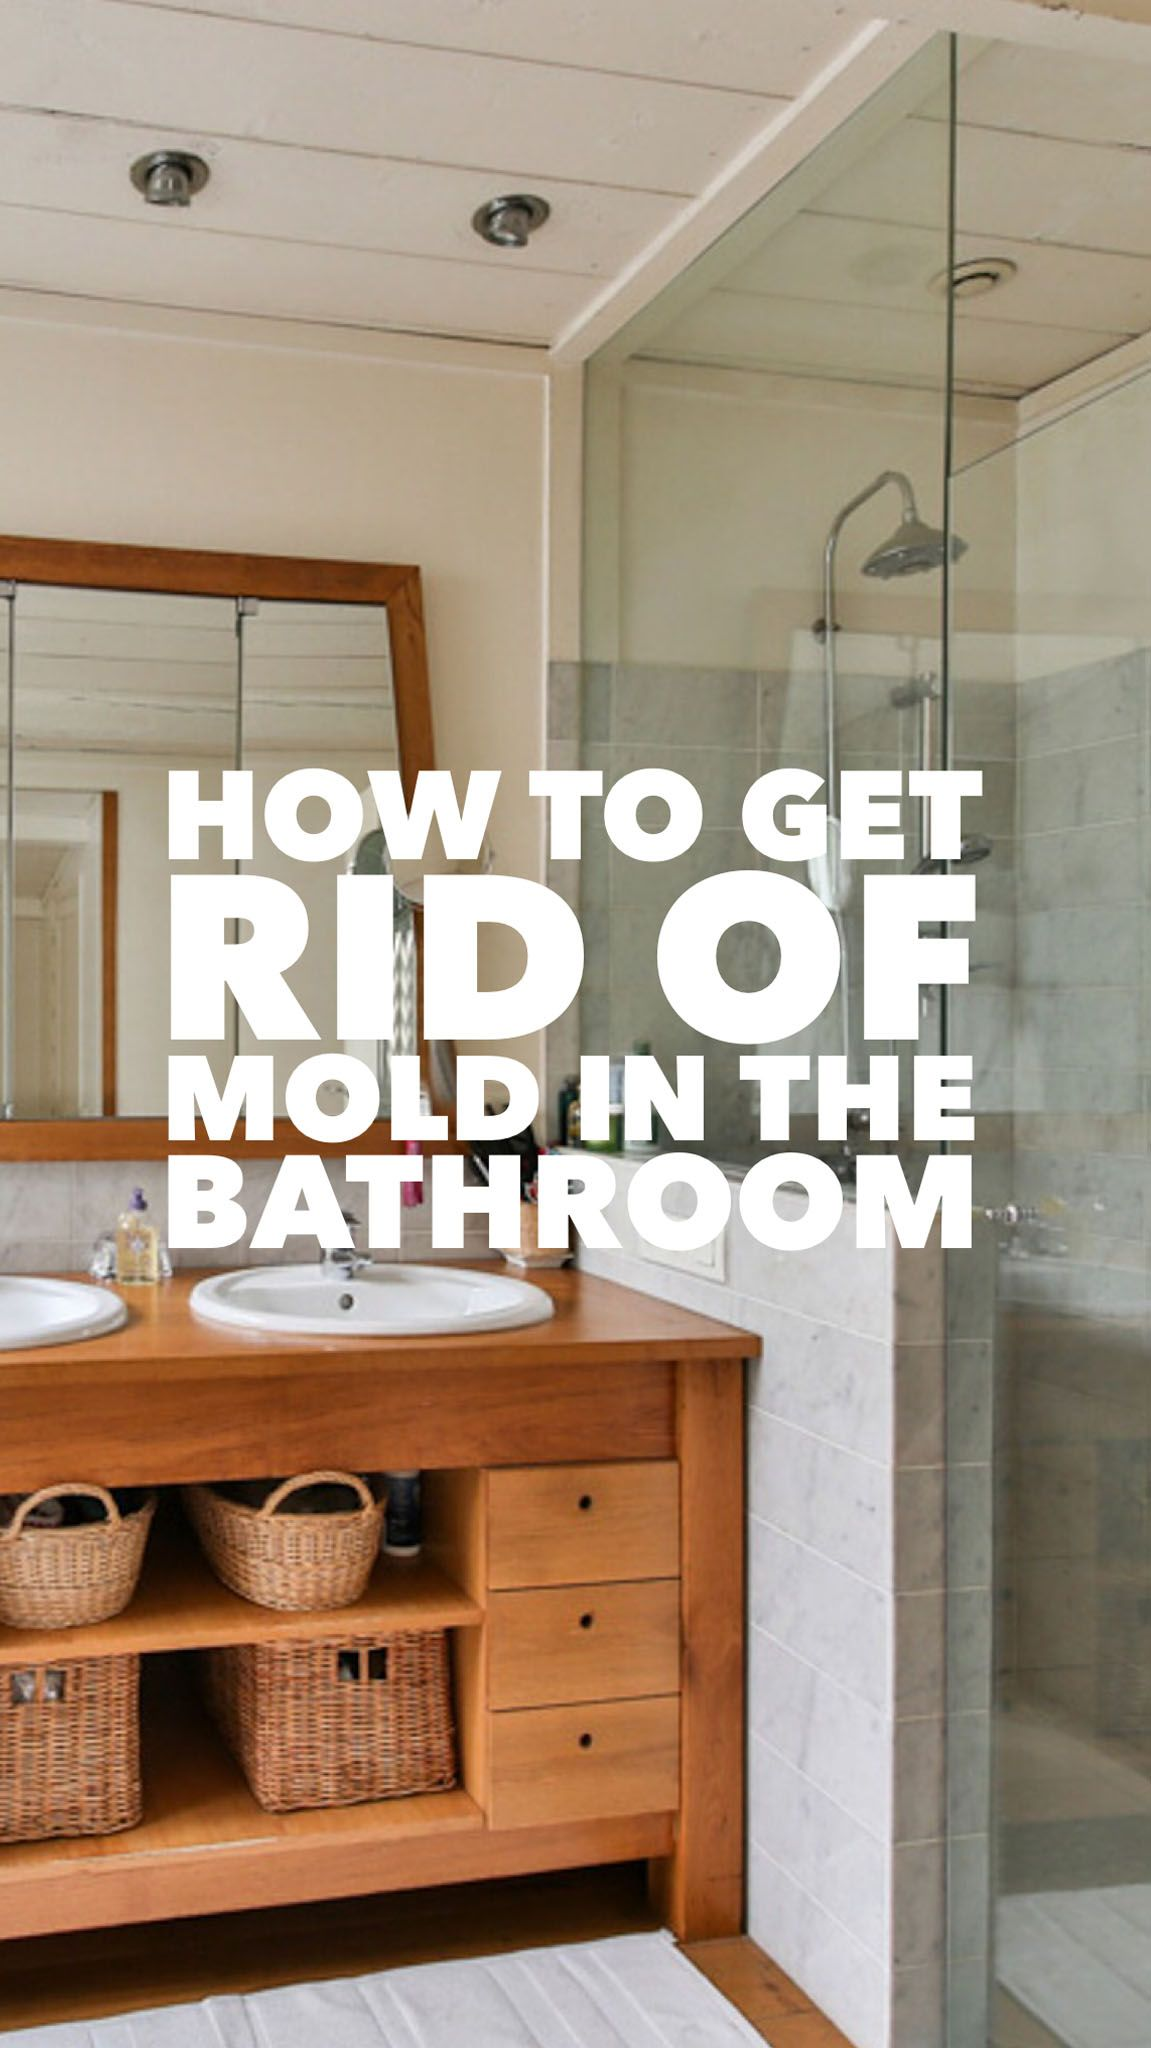 How To Remove Mold From Clothes | Mold in bathroom, Get ...